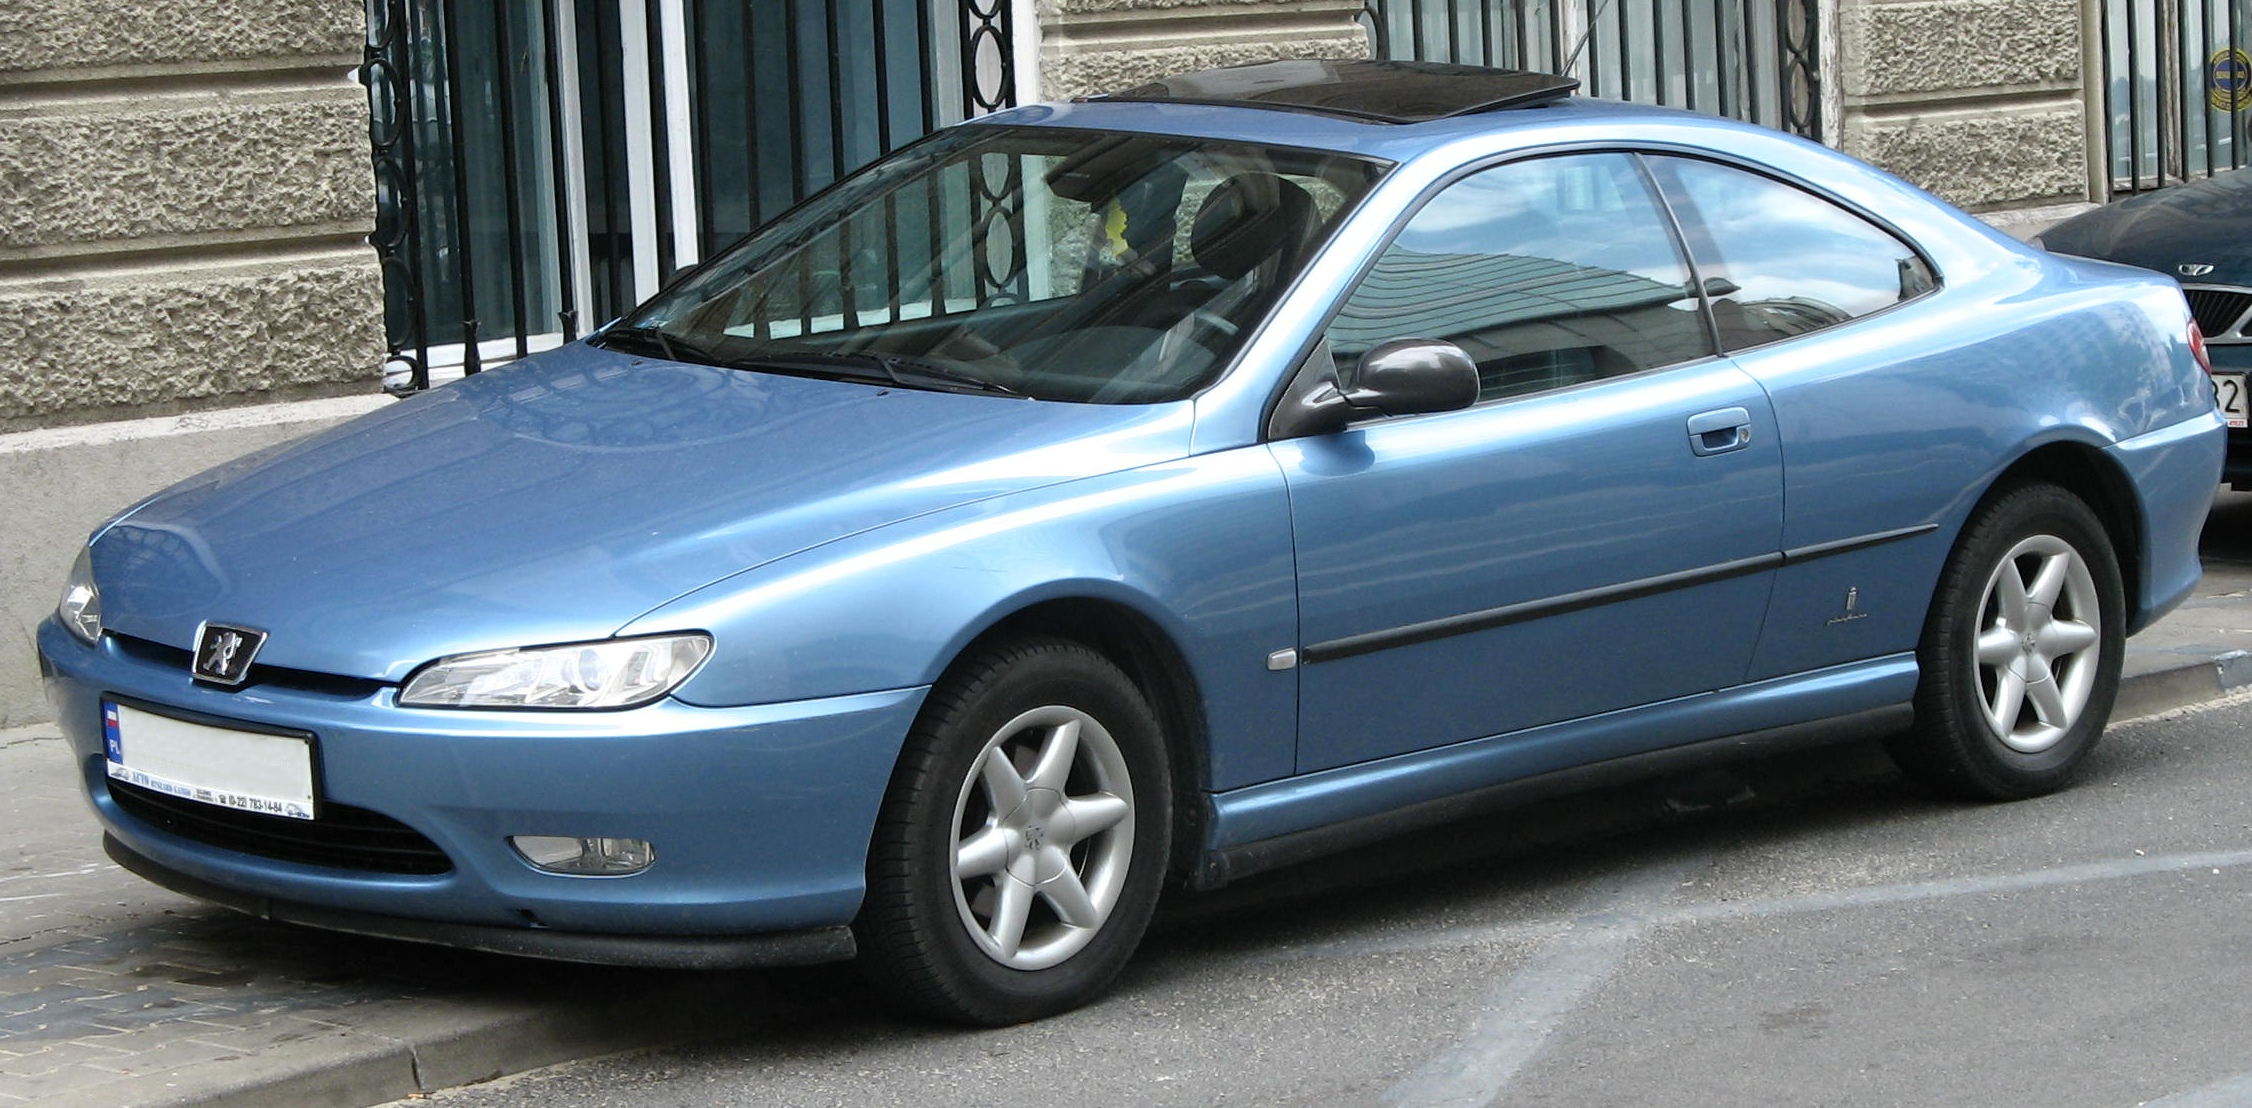 File Peugeot 406 Coupe Jpg Wikimedia Commons